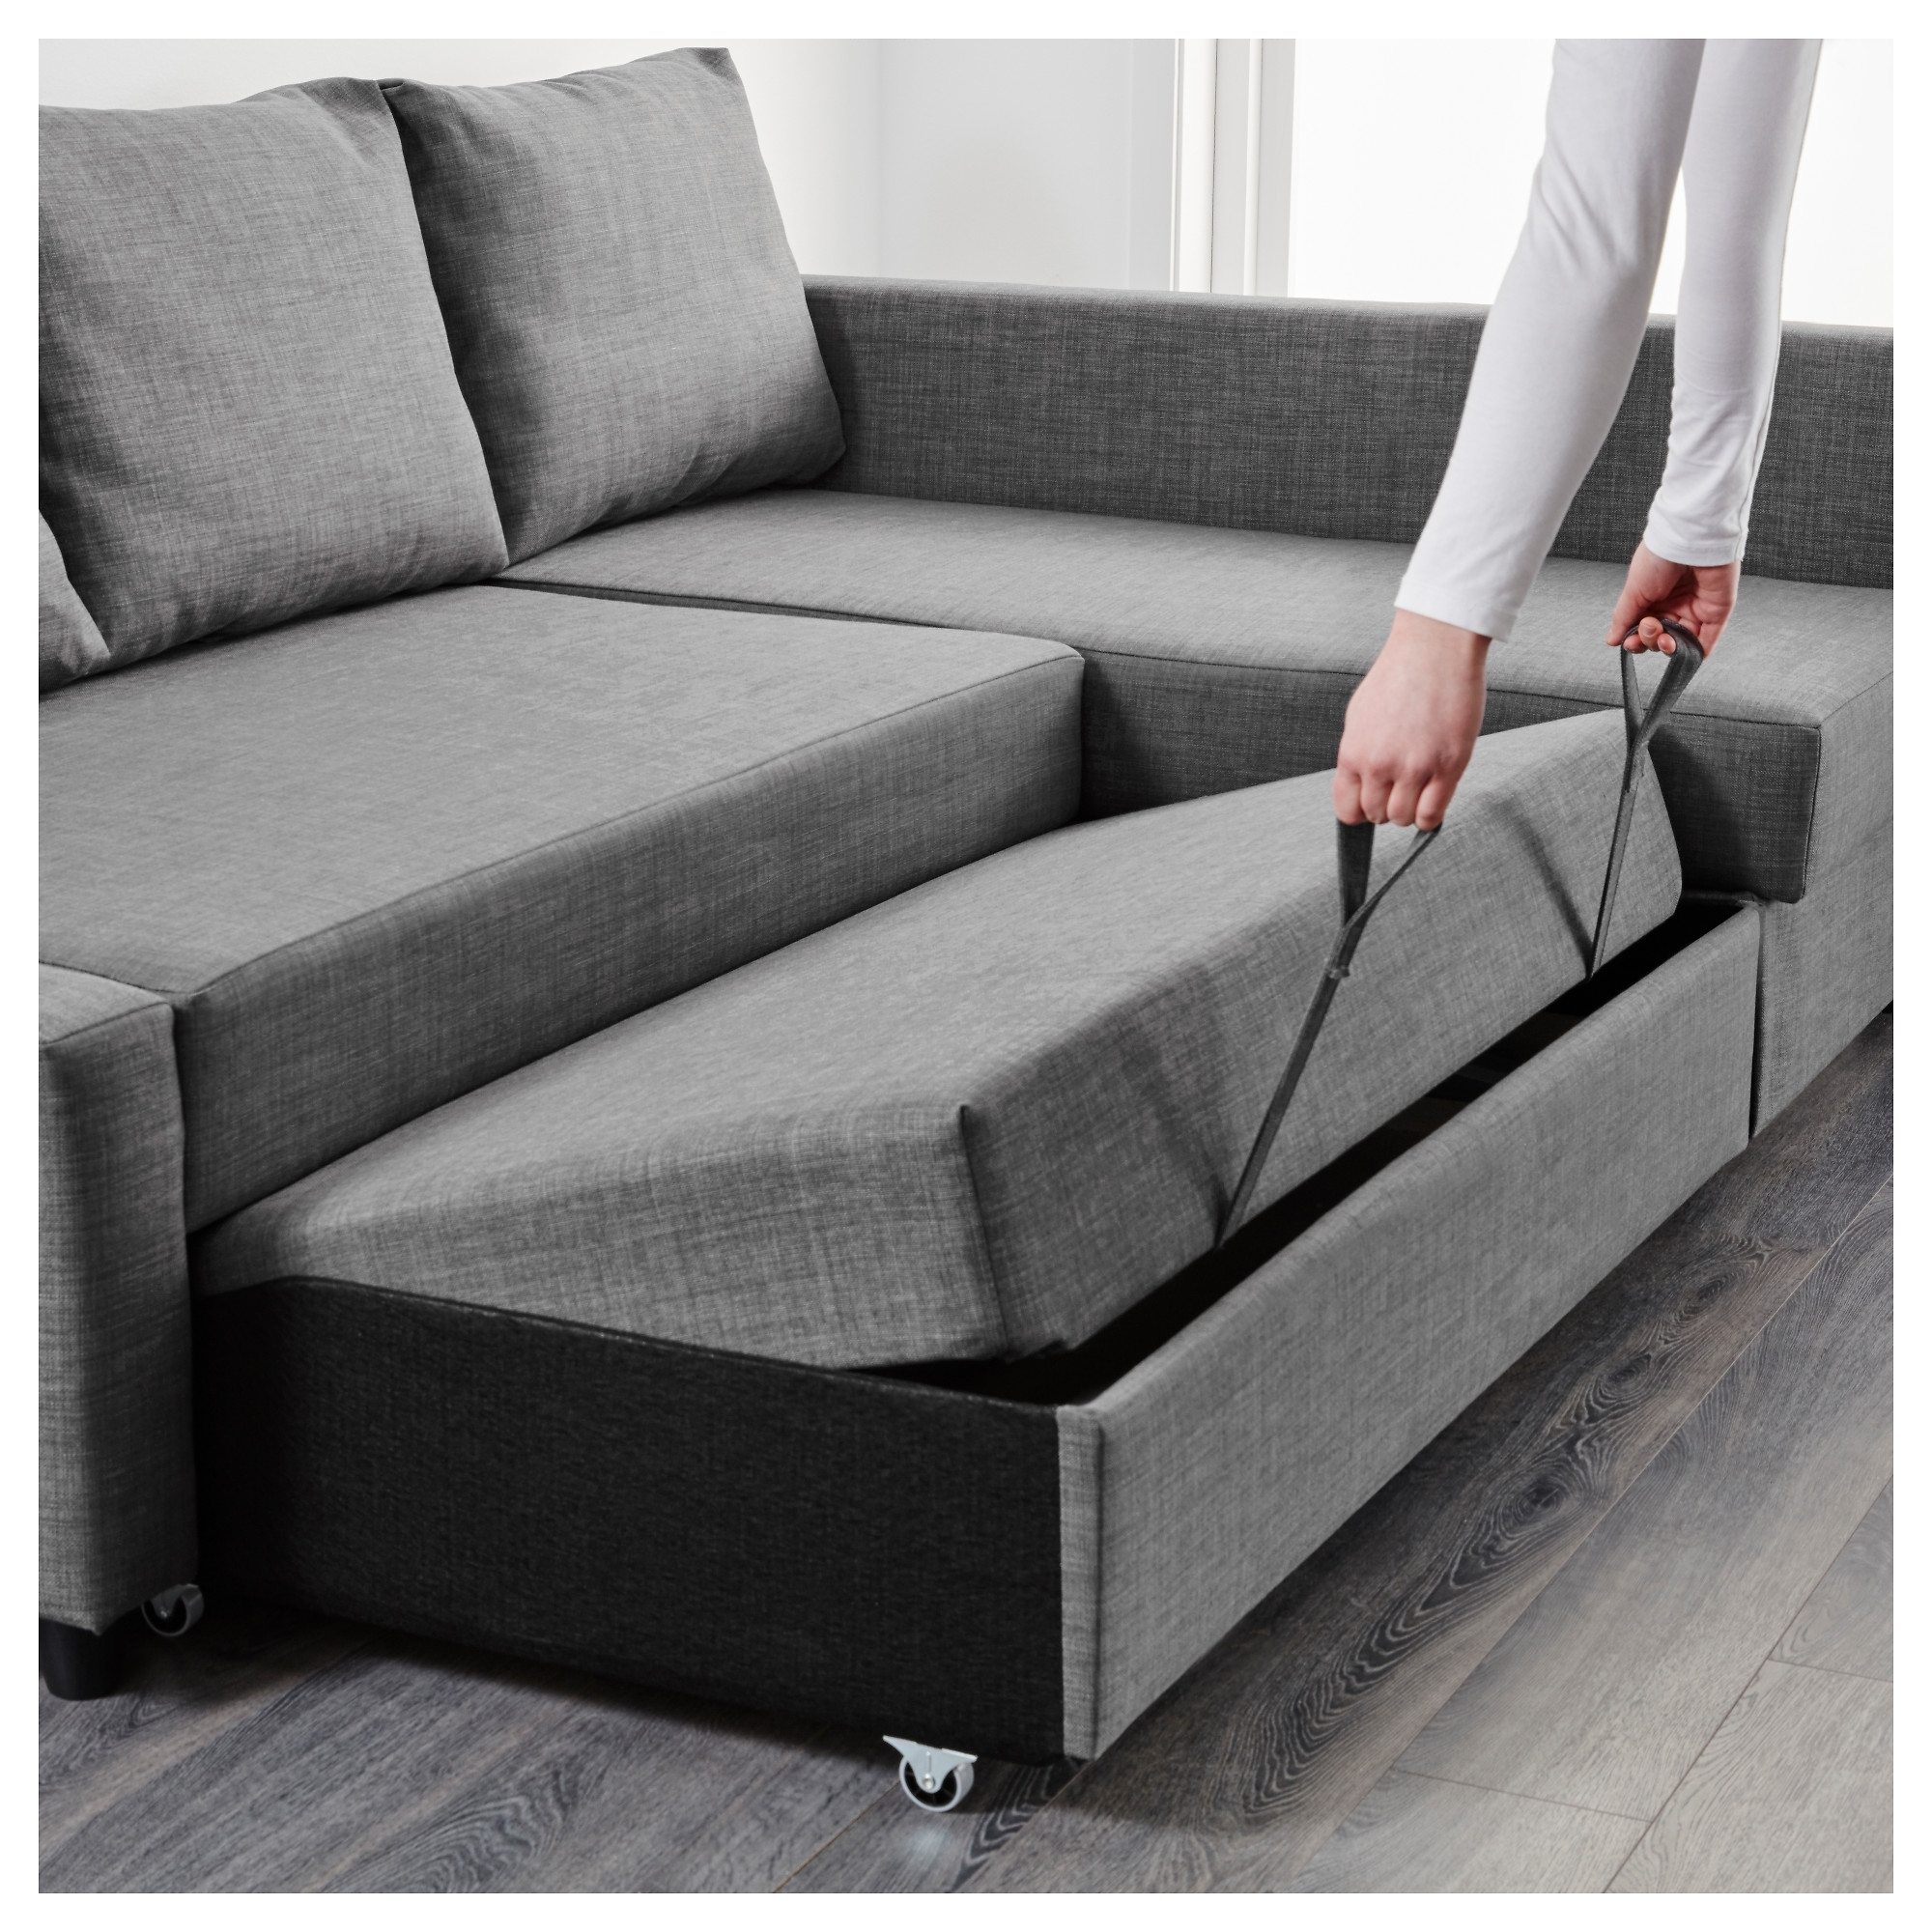 Newest Sectional Sofas At Ikea Within Friheten Sleeper Sectional,3 Seat W/storage – Skiftebo Beige – Ikea (View 7 of 15)